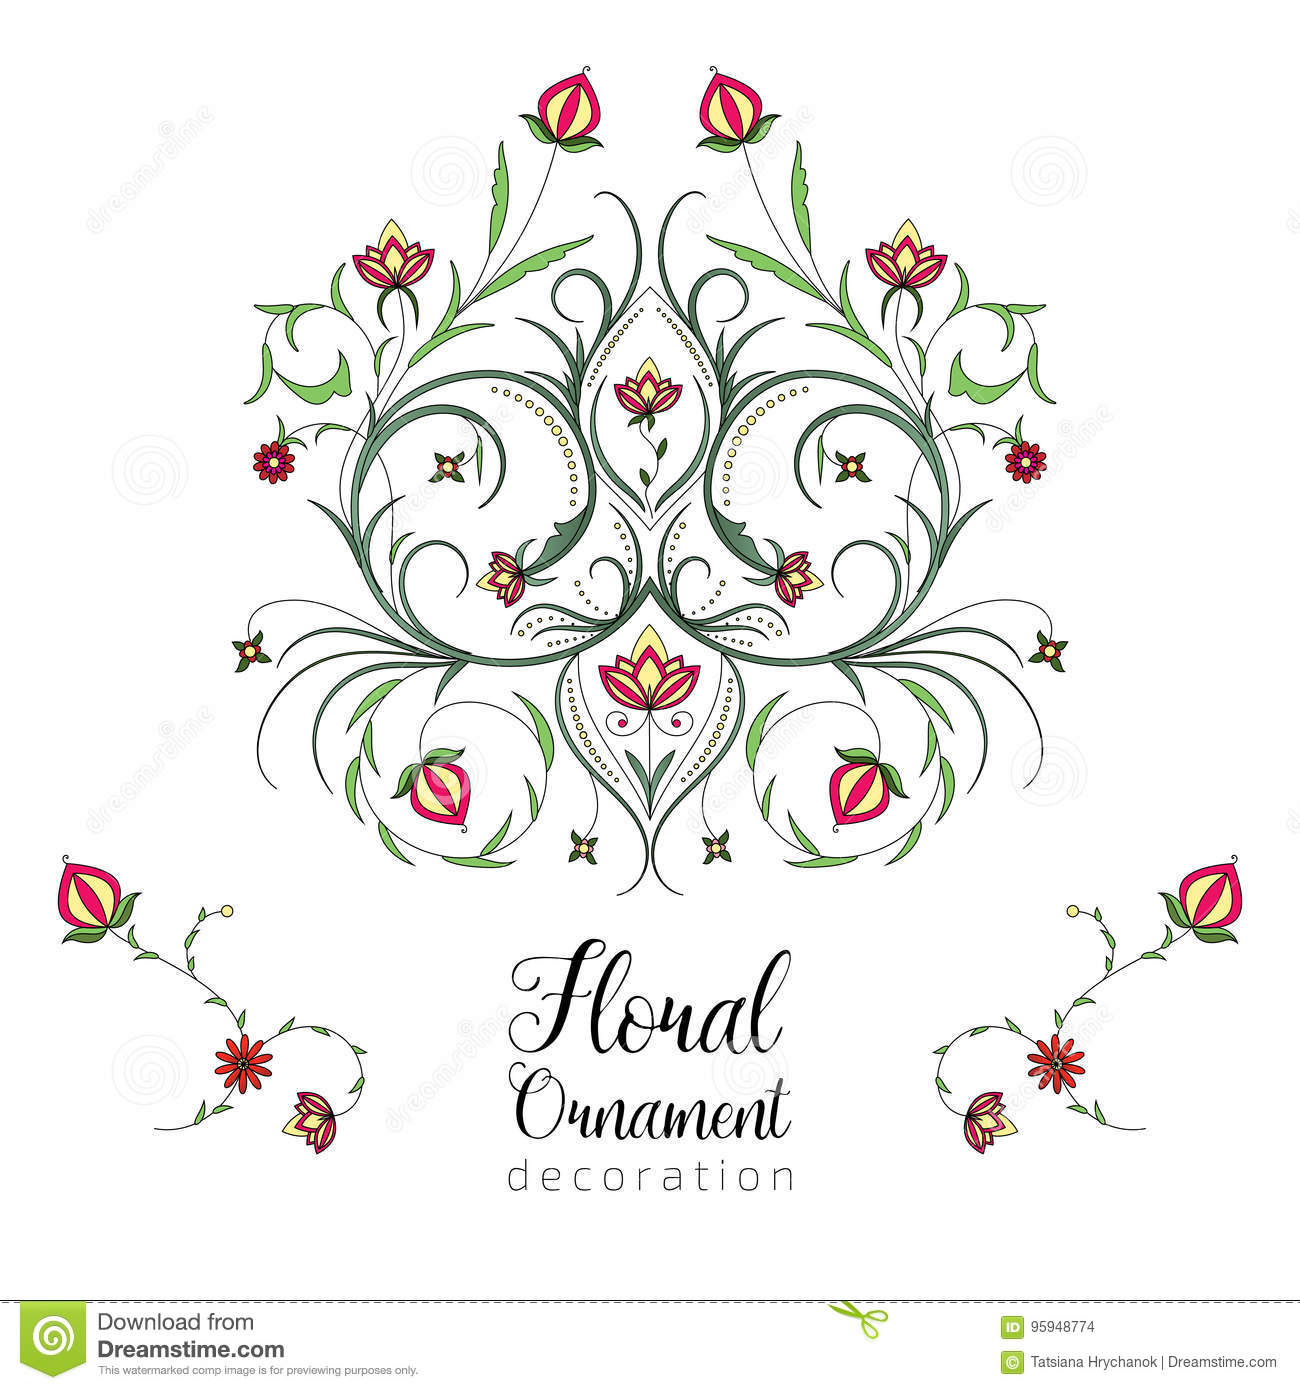 Vintage Floral Ornament For Invitations To A Wedding Anniversary